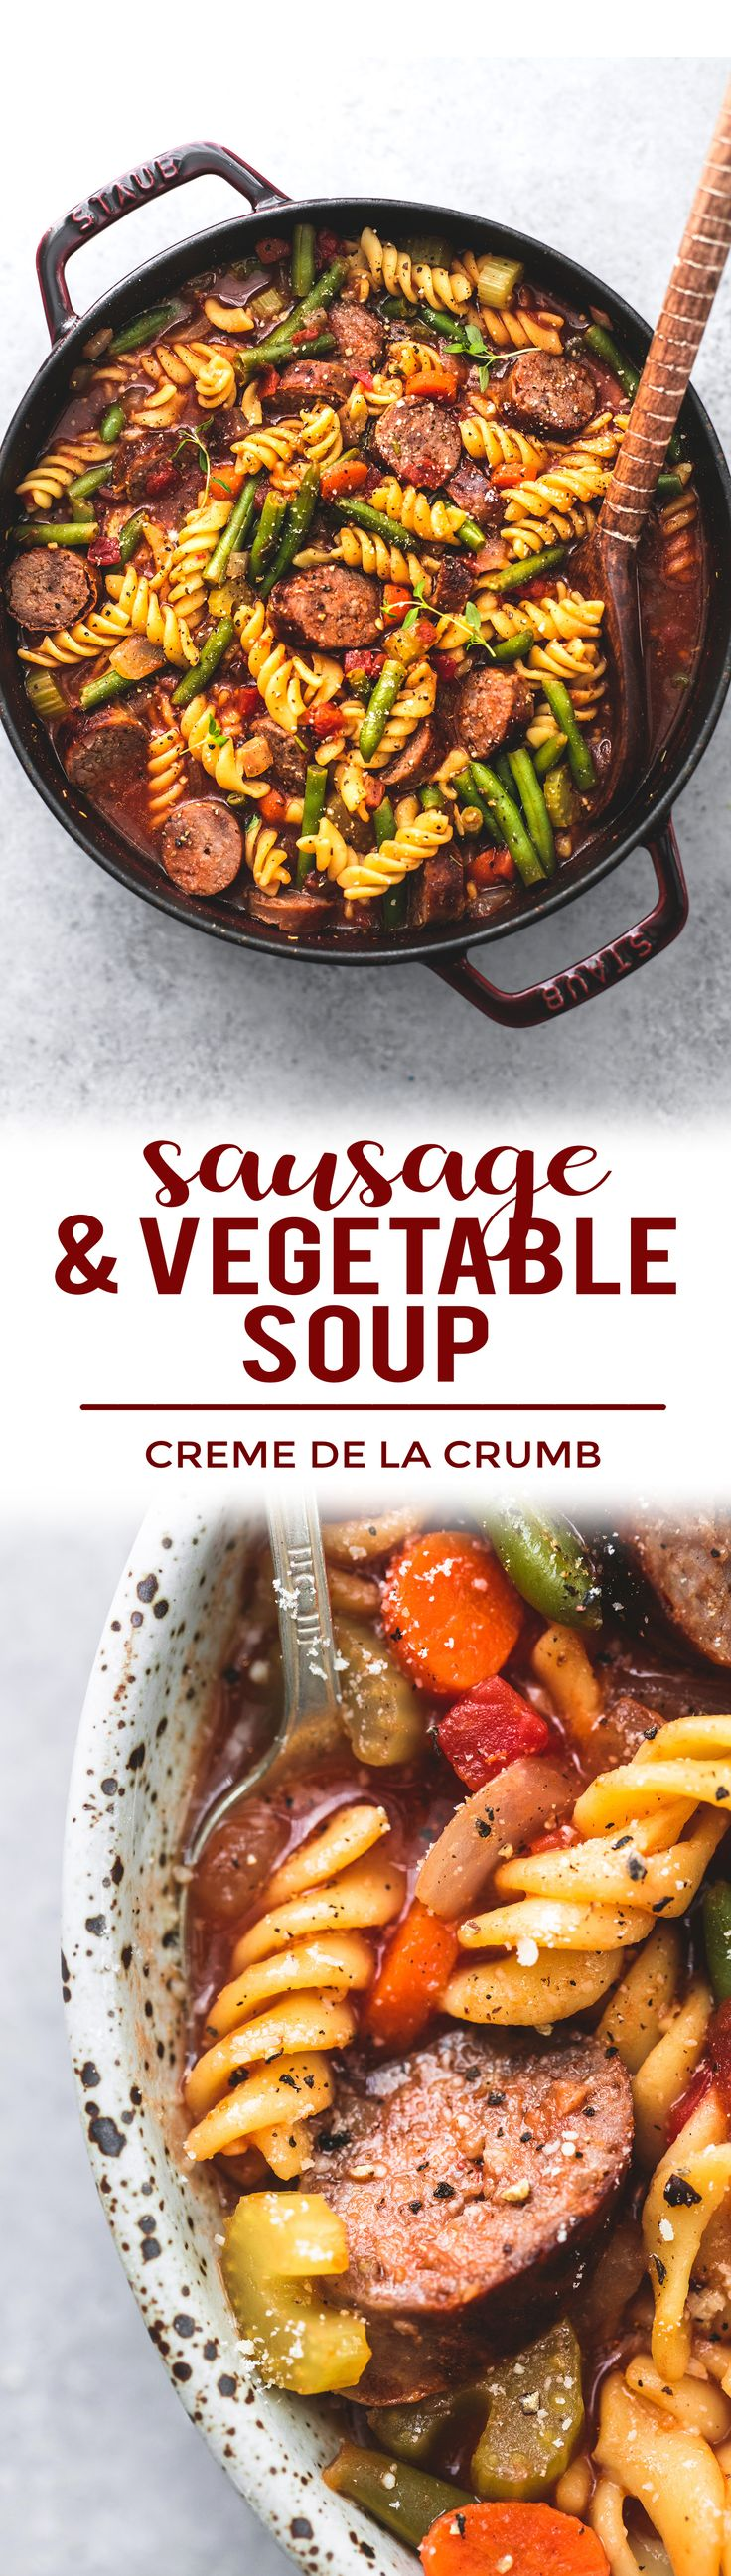 This hearty sausage and vegetable soup is loaded with juicy grilled Italian sausage, tender pasta noodles, vegetables and bold savory flavors! | lecremedelacrumb.com #recipe #healthy #easy #soup http://eatdojo.com/healthy-soup-recipes-for-weight-loss-easy-yummy/